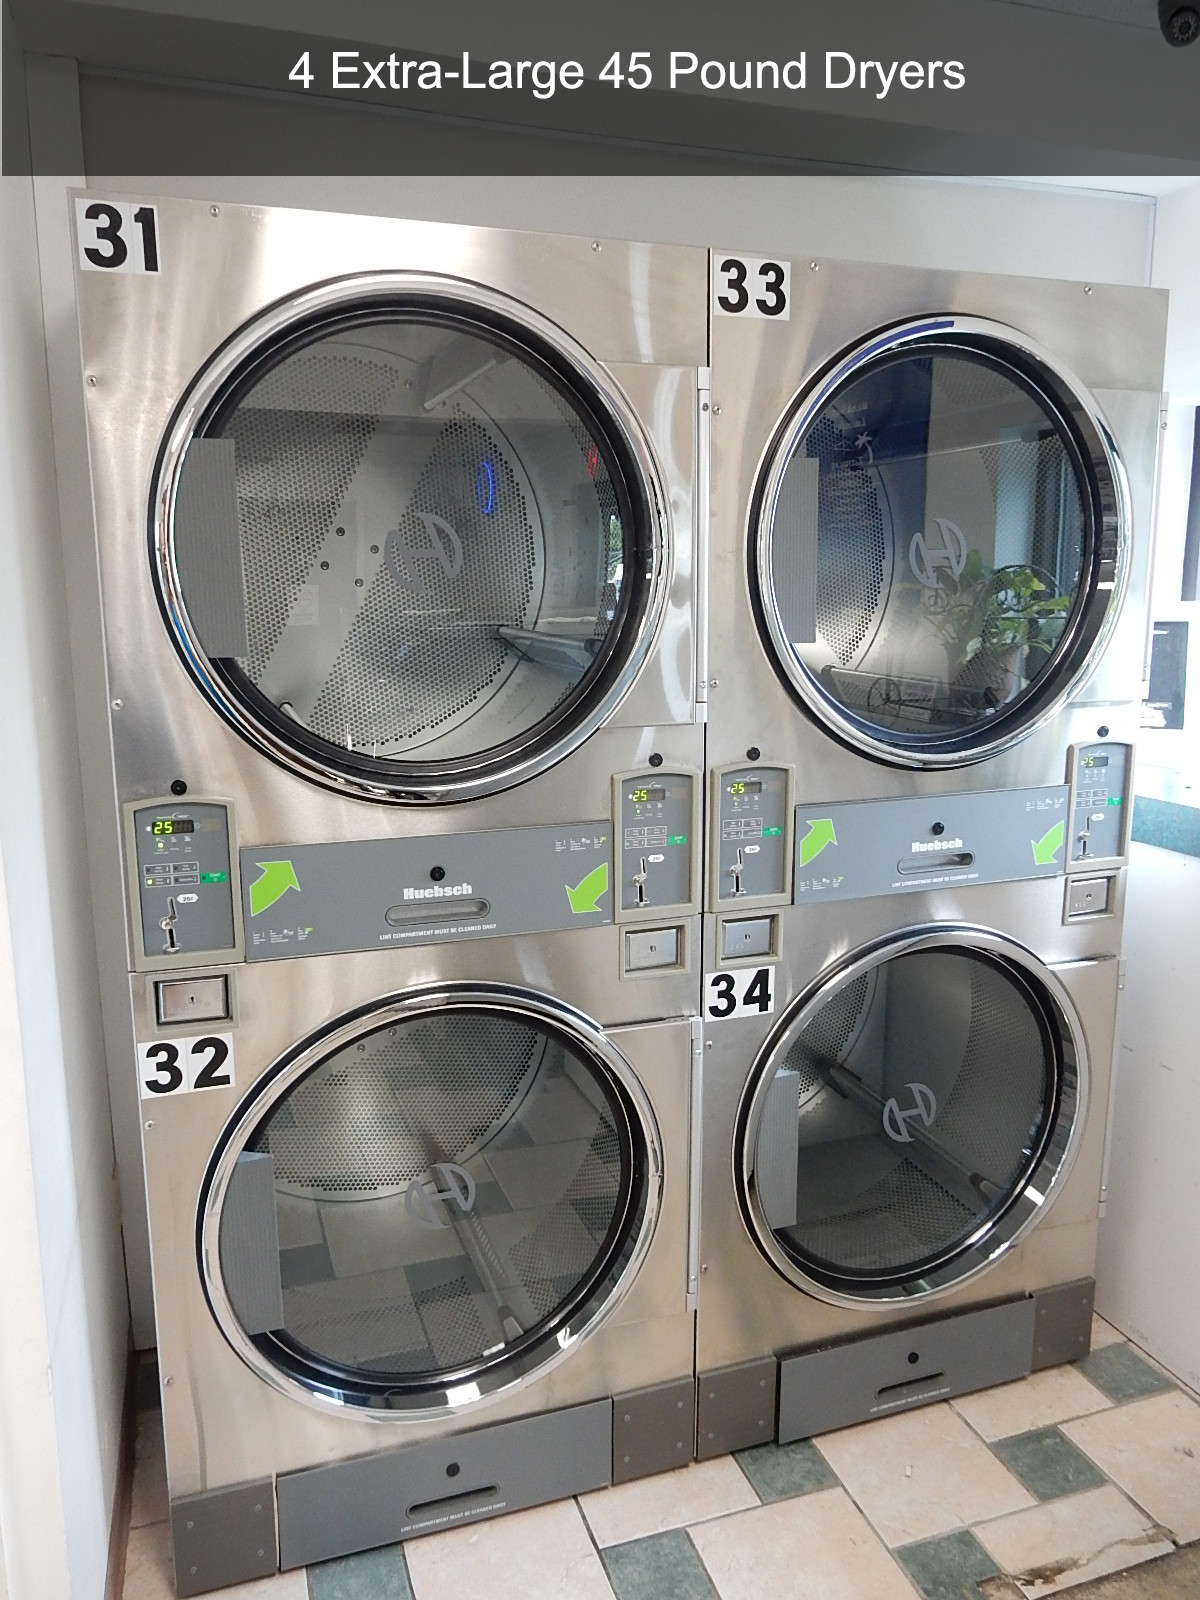 4 Extra-large 45 Pound Dryers